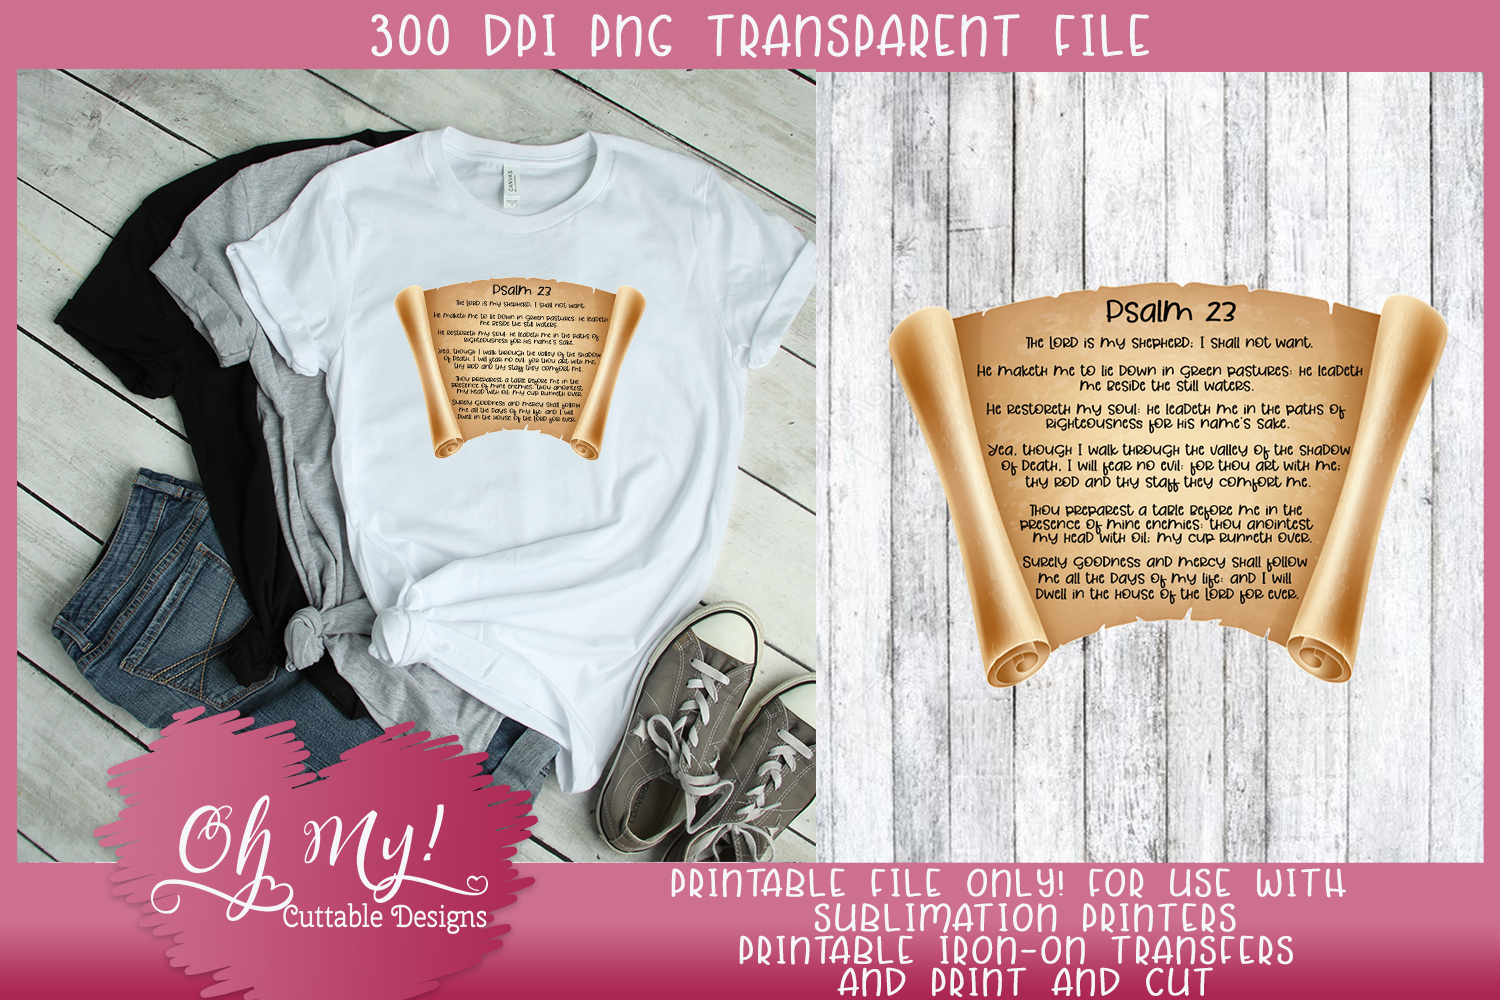 Religious Psalm 23 PNG Print/Cut Sublimation Printable example image 2